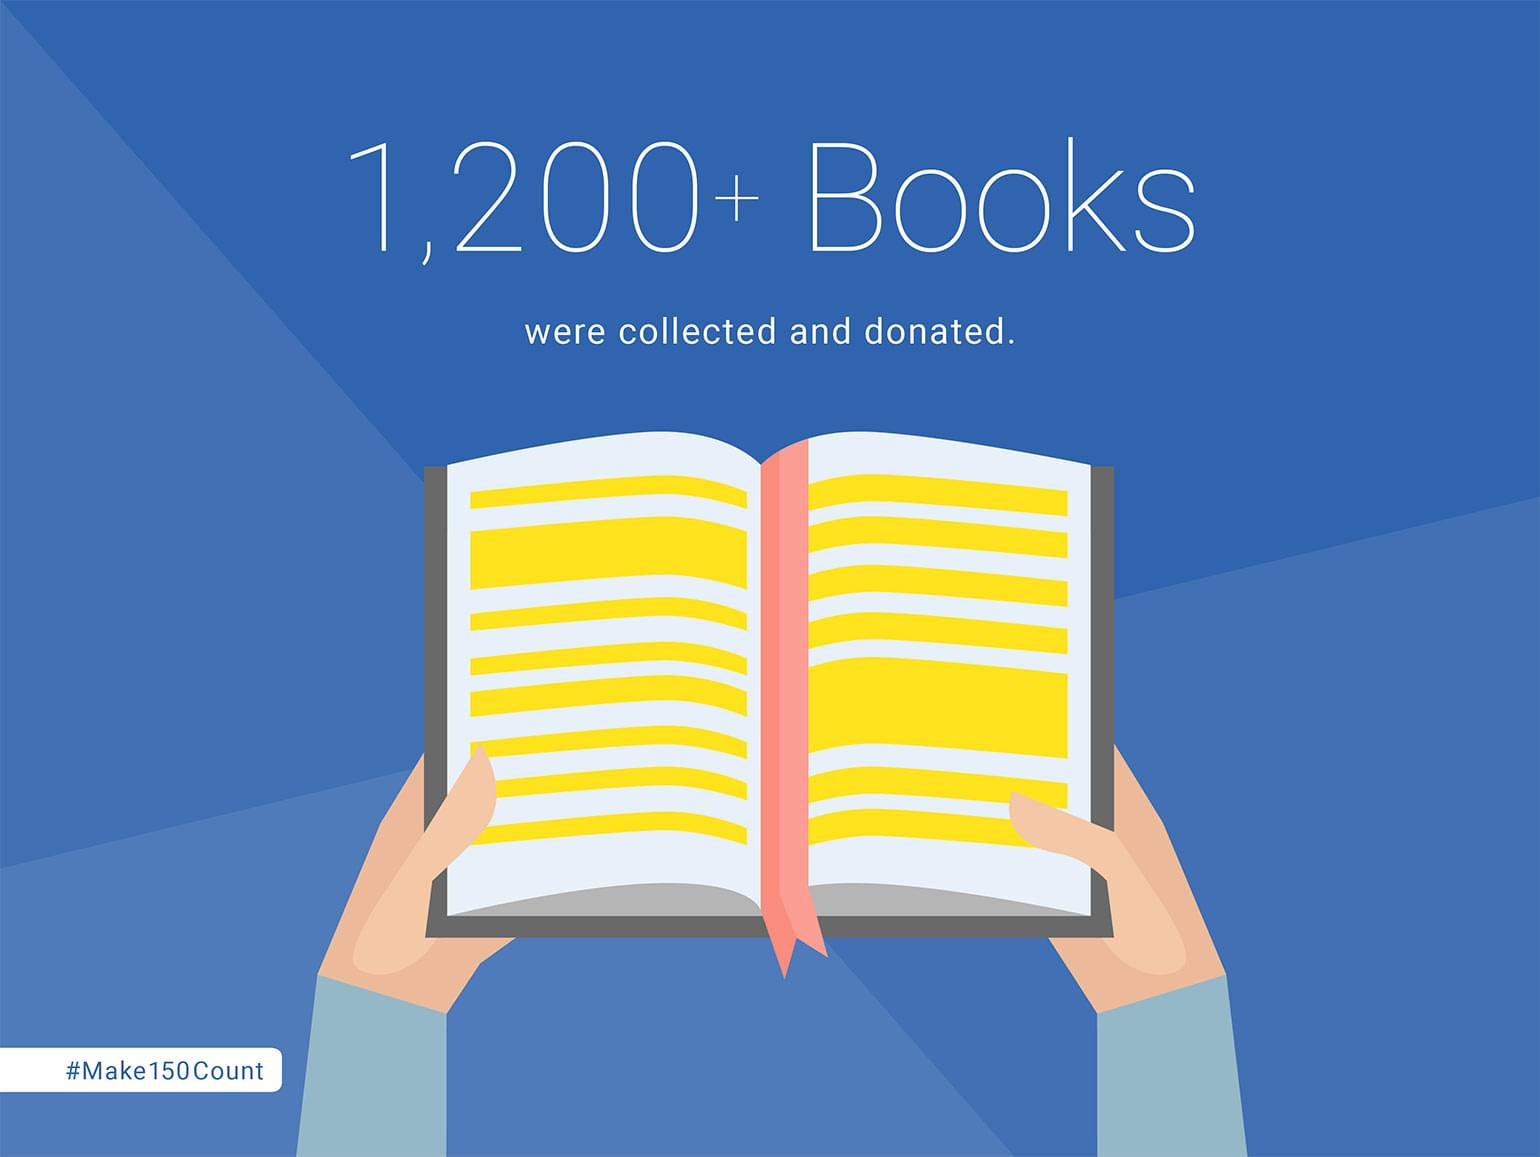 1,200+ Books were collected and donated